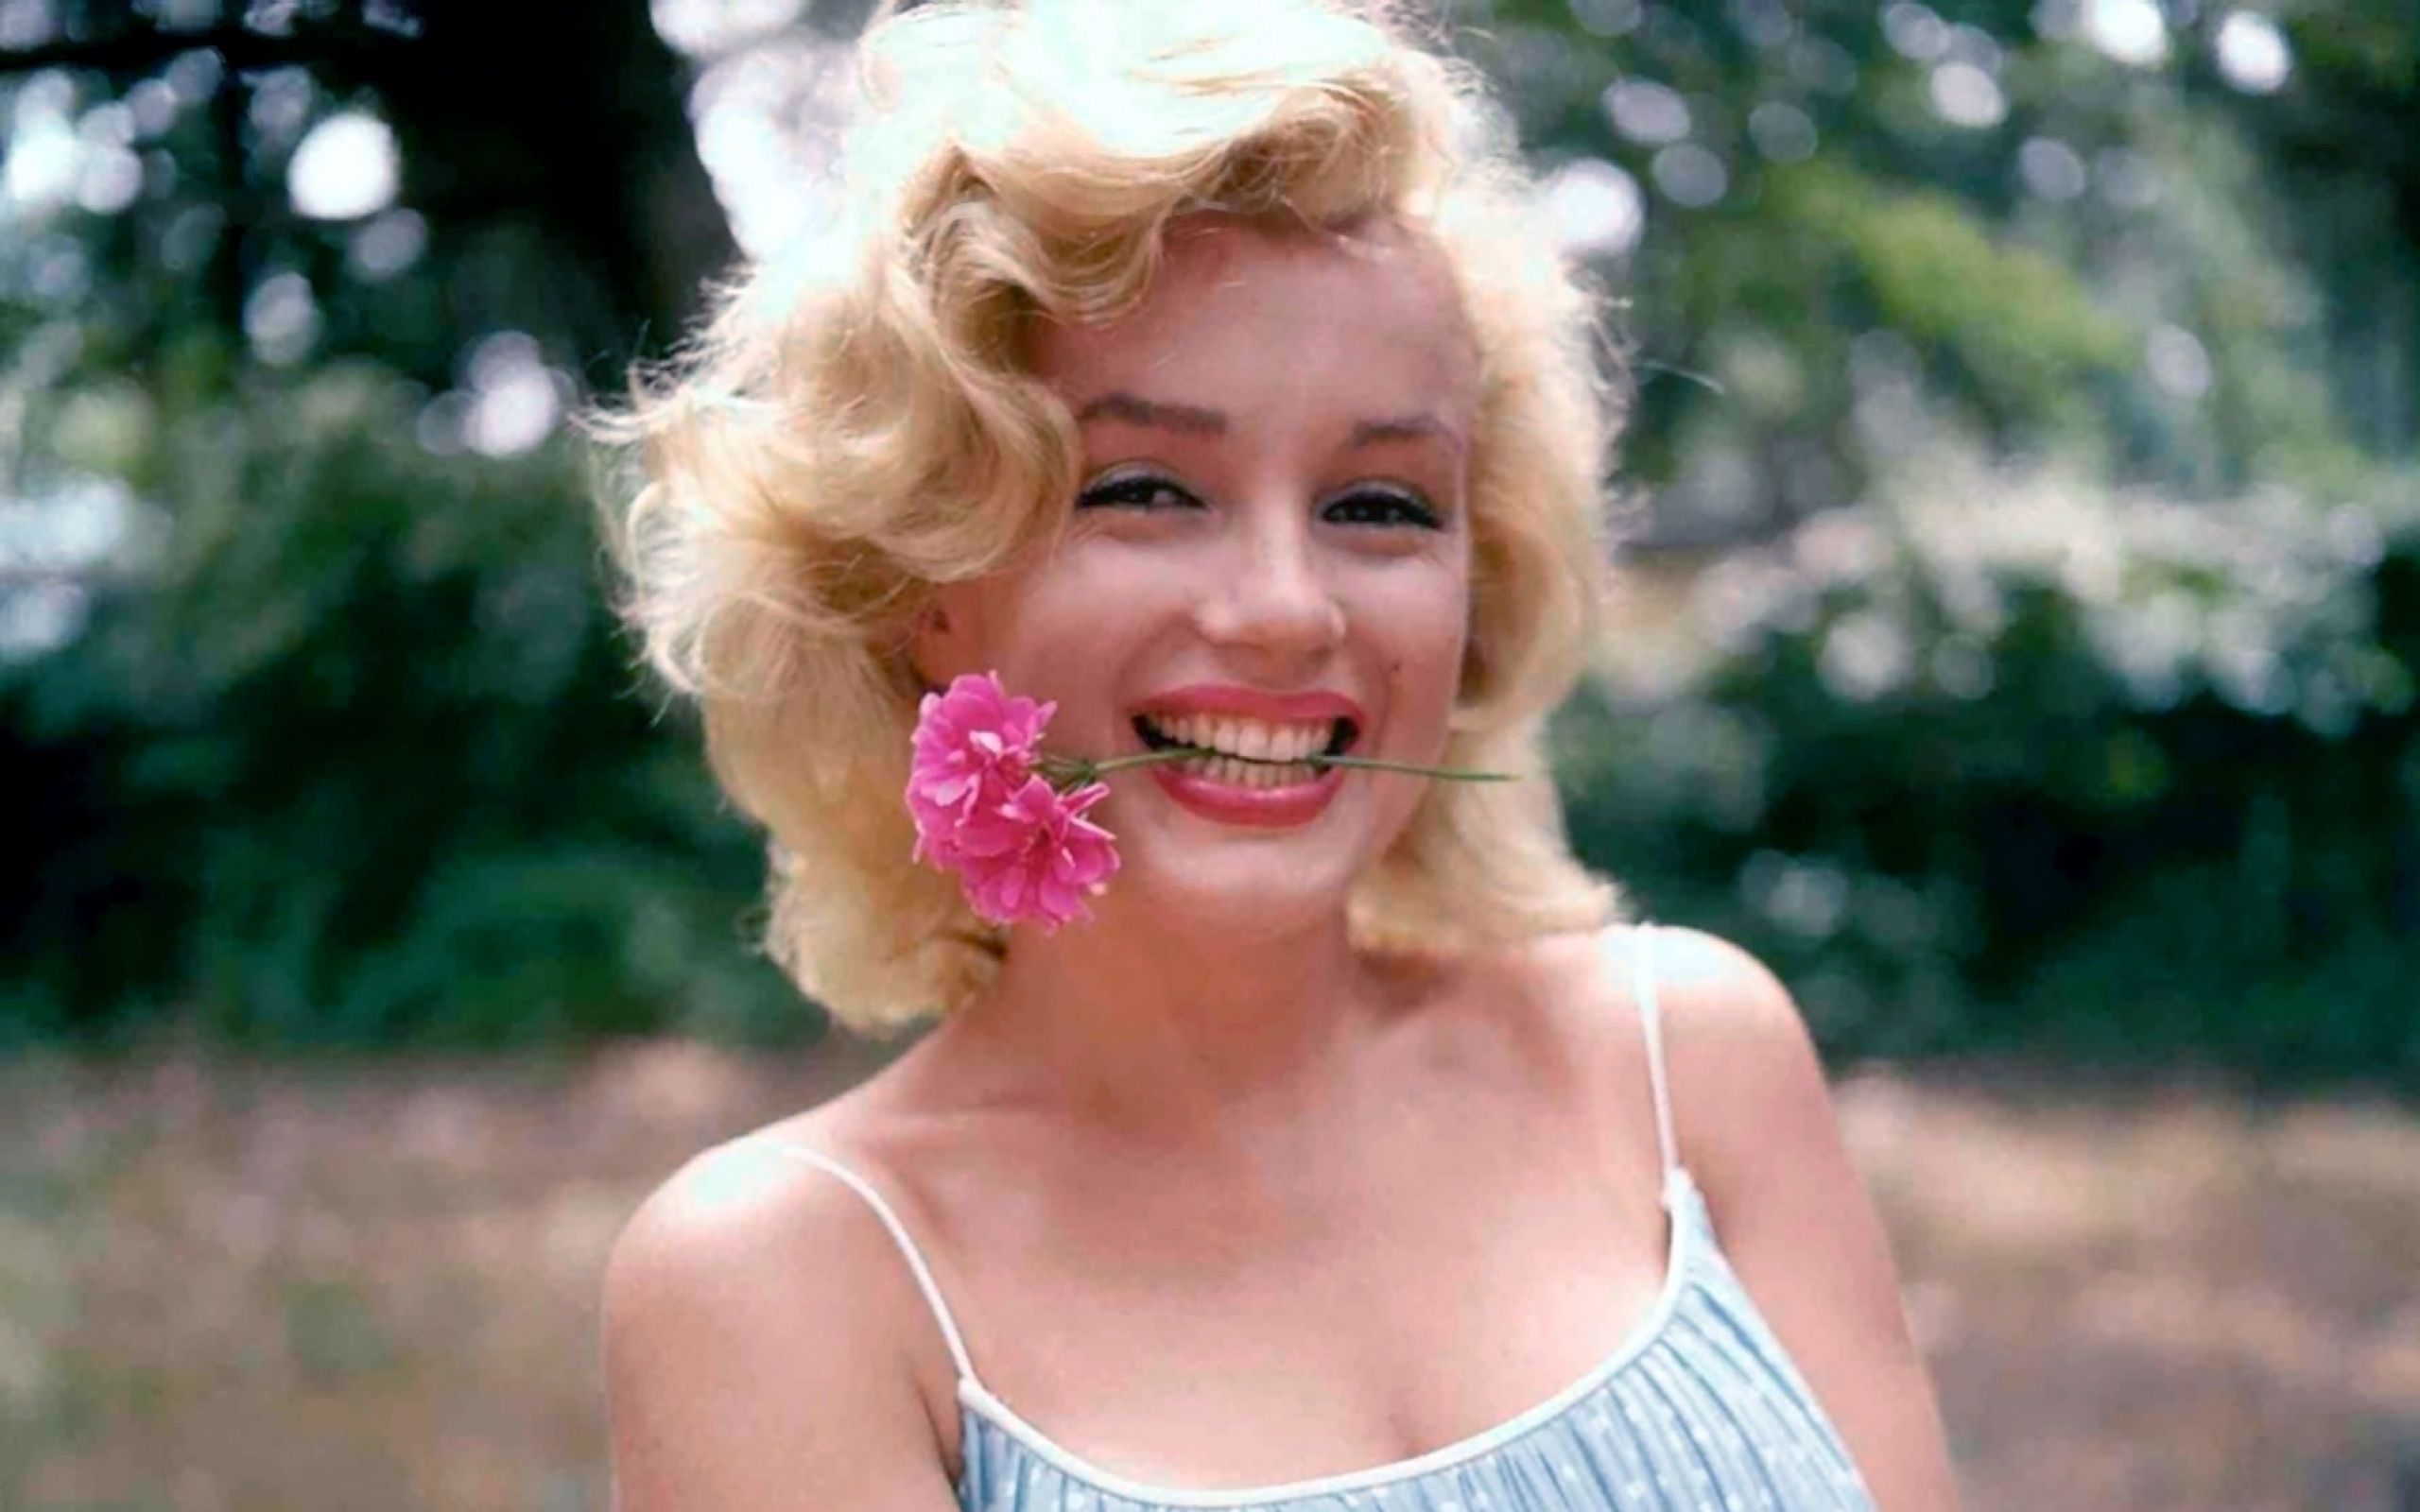 Marilyn monroe hd wallpapers get the newest collection of marilyn marilyn monroe hd wallpapers get the newest collection of marilyn monroe hd wallpapers for your desktop pcs cell phones and tablets only at voltagebd Choice Image